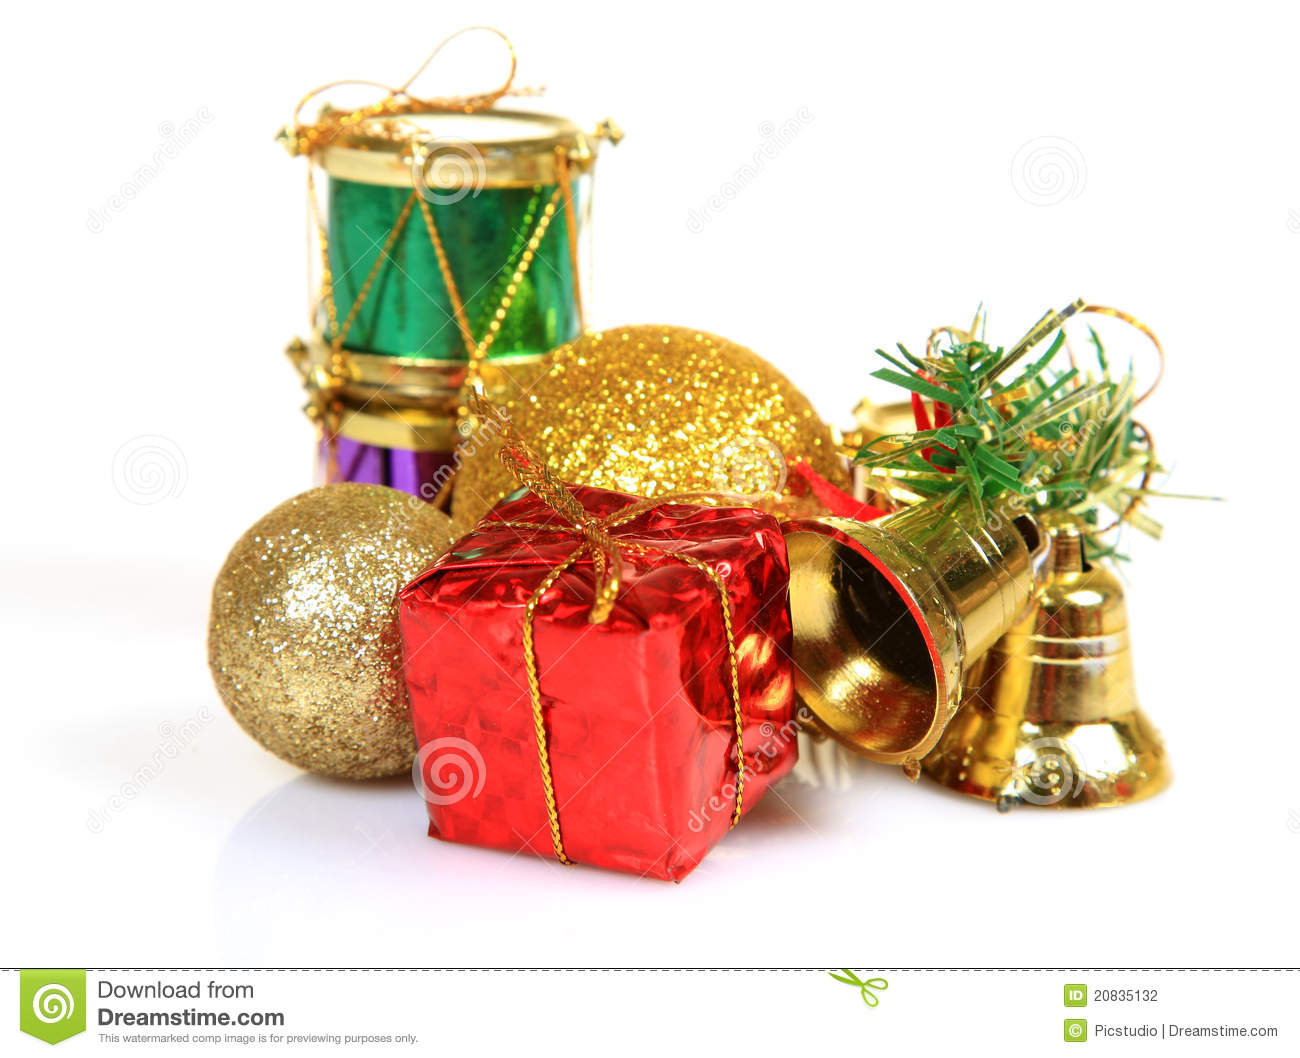 Christmas Gifts And Decoration Items Stock Photo  Image. Christmas Decorations To Make From Salt Dough. When Do Christmas Decorations Go Up At Home. Ideas For Christmas Door Decorations At School. Christmas Decorations Vandalized. Best Christmas Decorations Outdoor. How To Make Christmas Decorations Using Wire. Christmas Decorating Ideas House And Home. Christmas Home Decorating Ideas Pictures